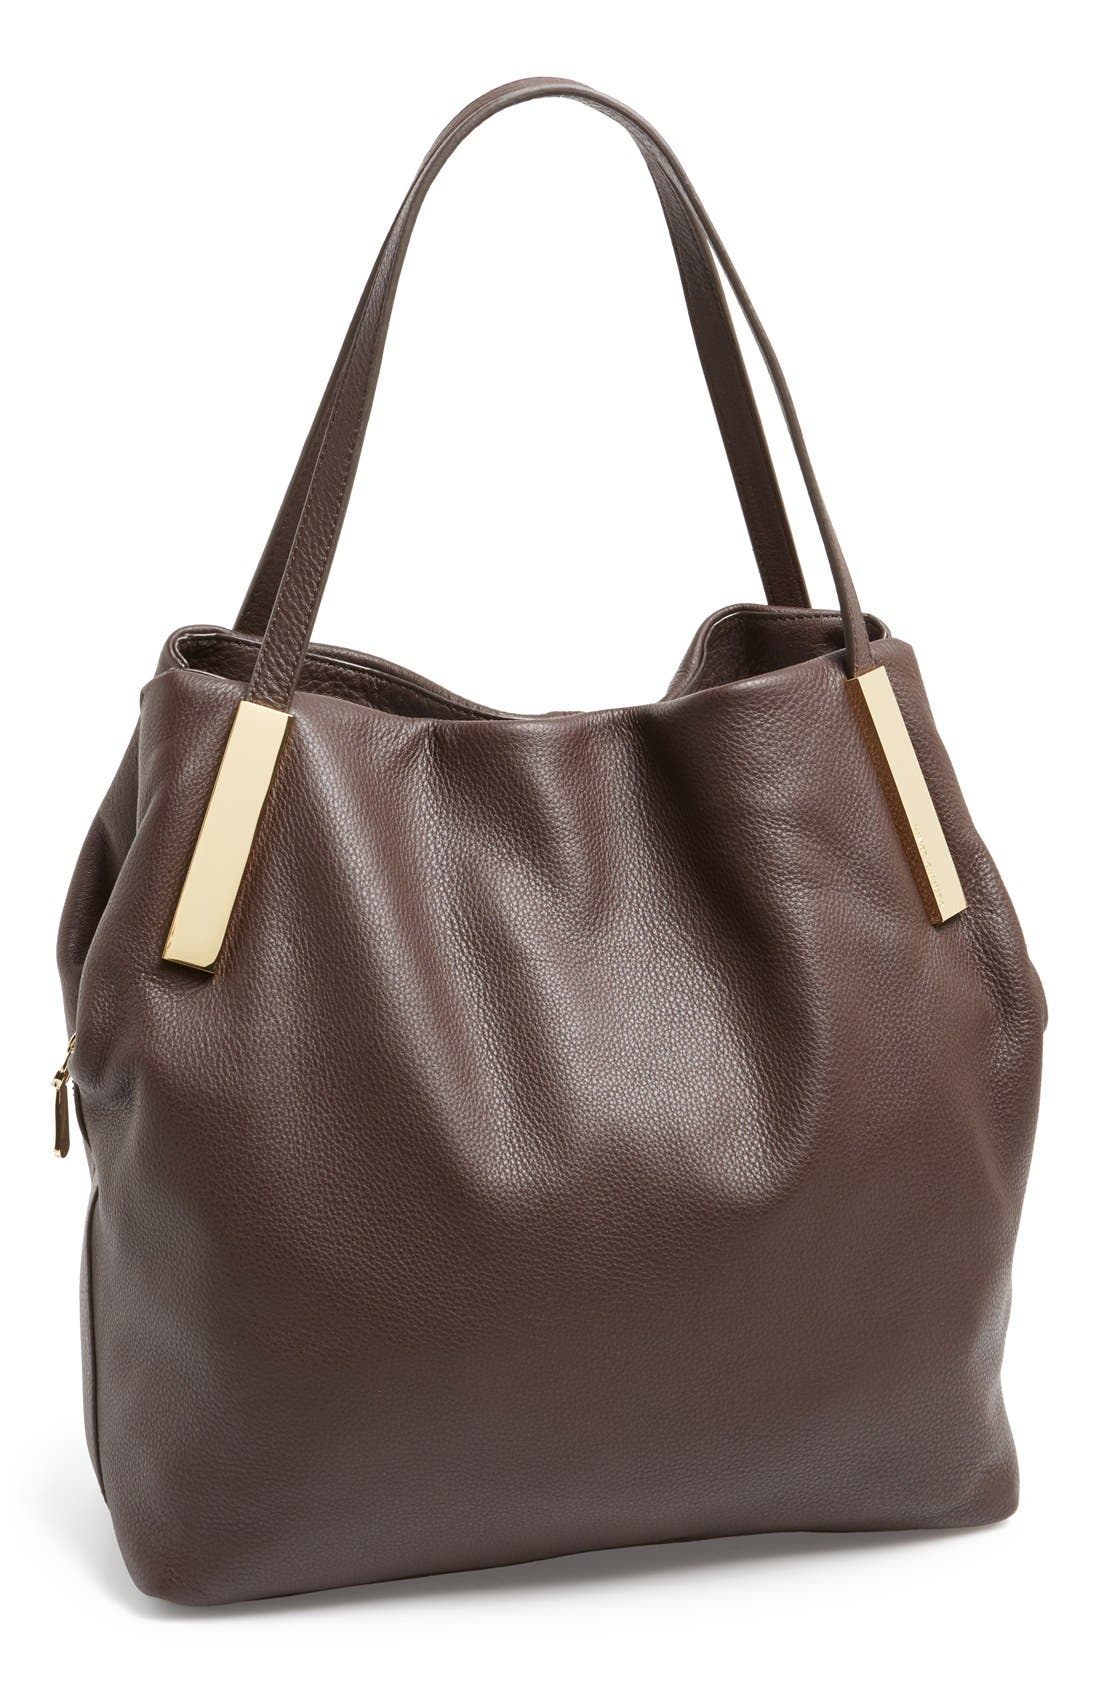 Alternate Image 1 Selected - Vince Camuto 'Brody' Leather Tote